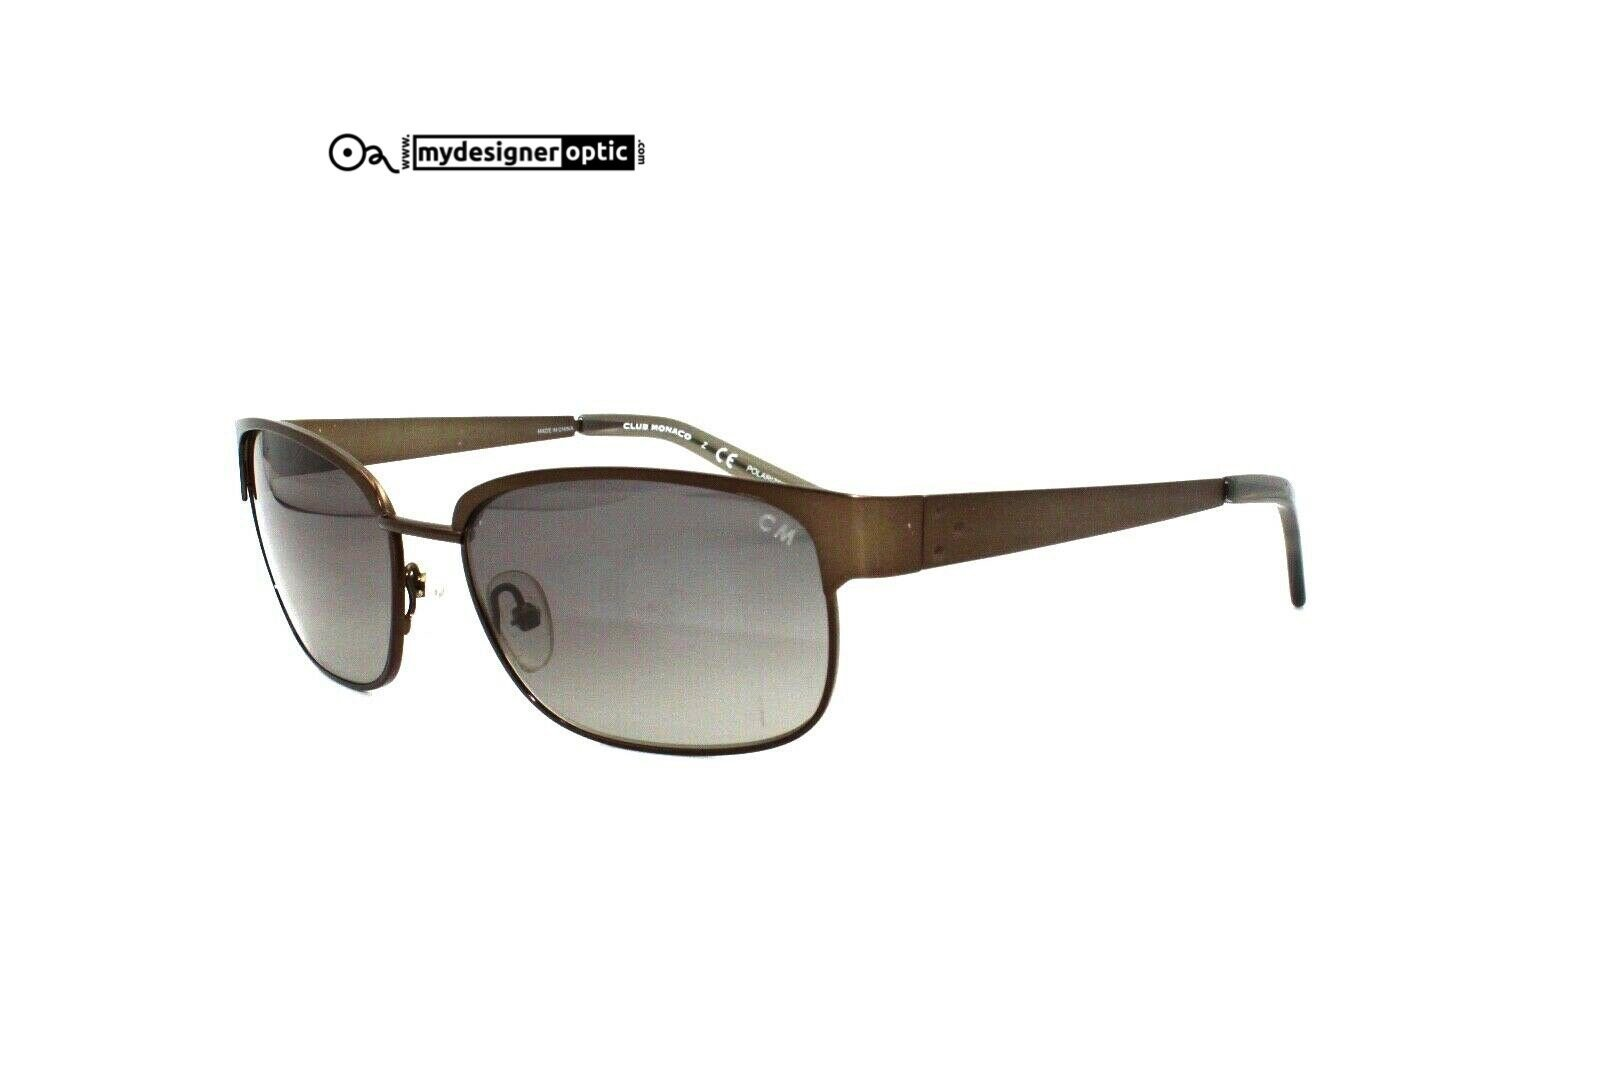 Club Monaco Polarized Sunglasses CM7516 103/T3 55 16 135 3P - Mydesigneroptic